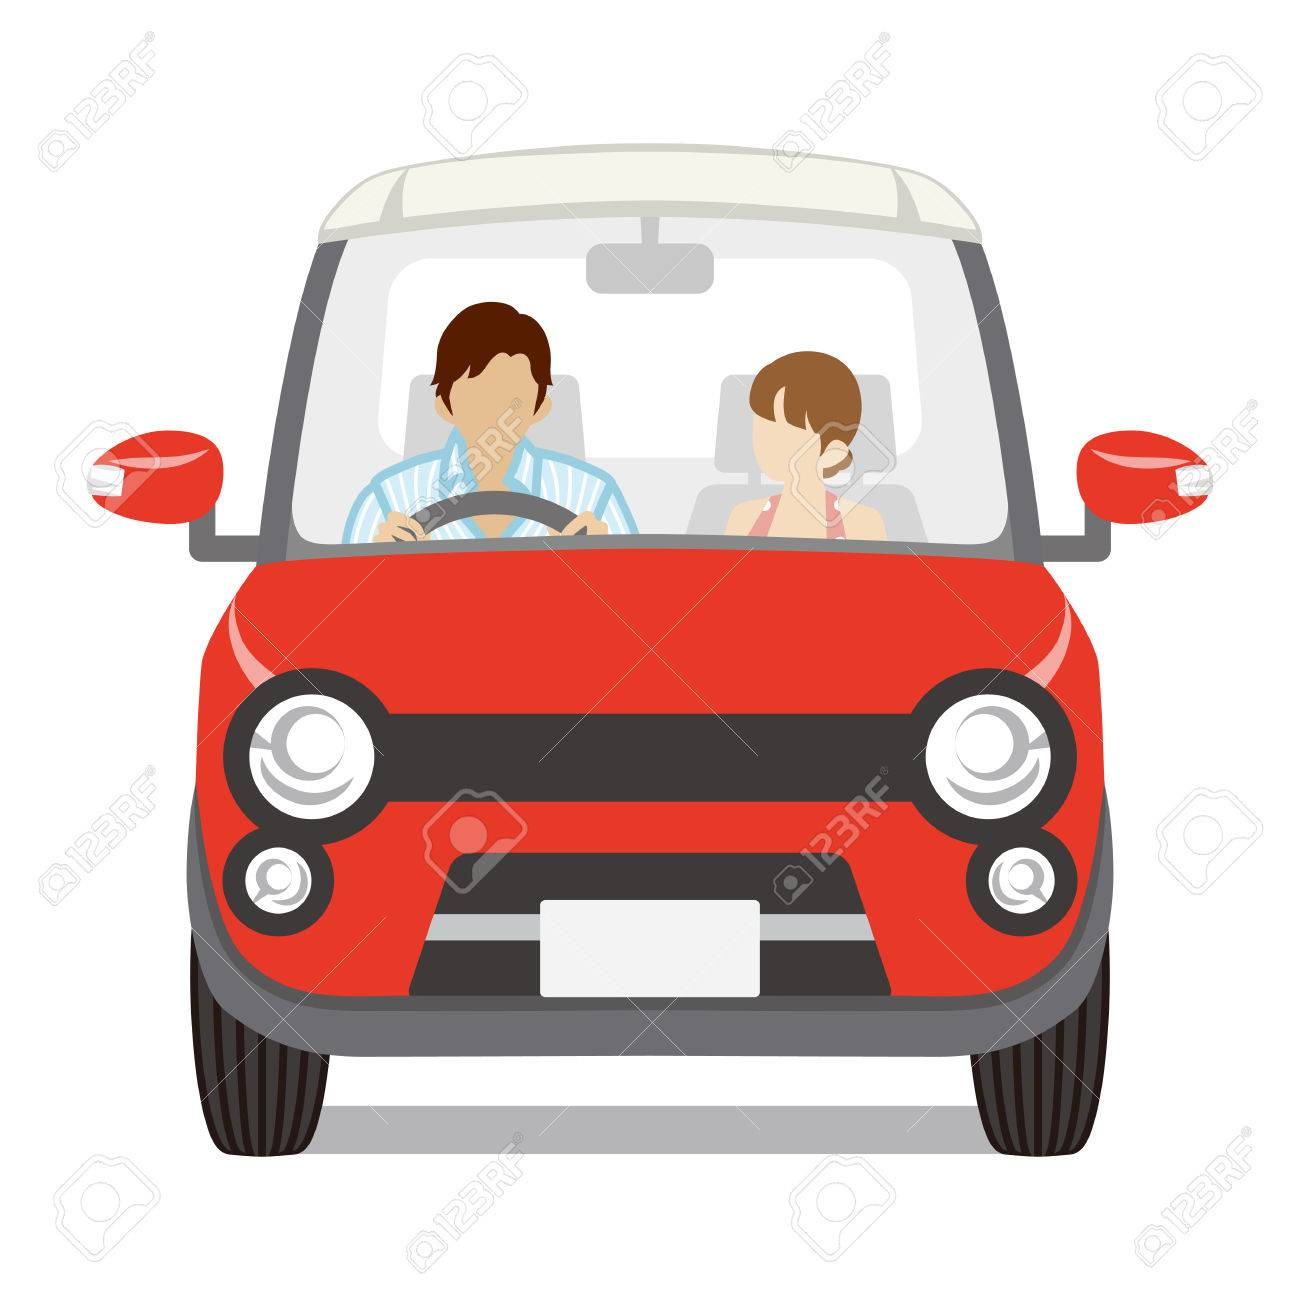 Couple riding the Red car, Front view.